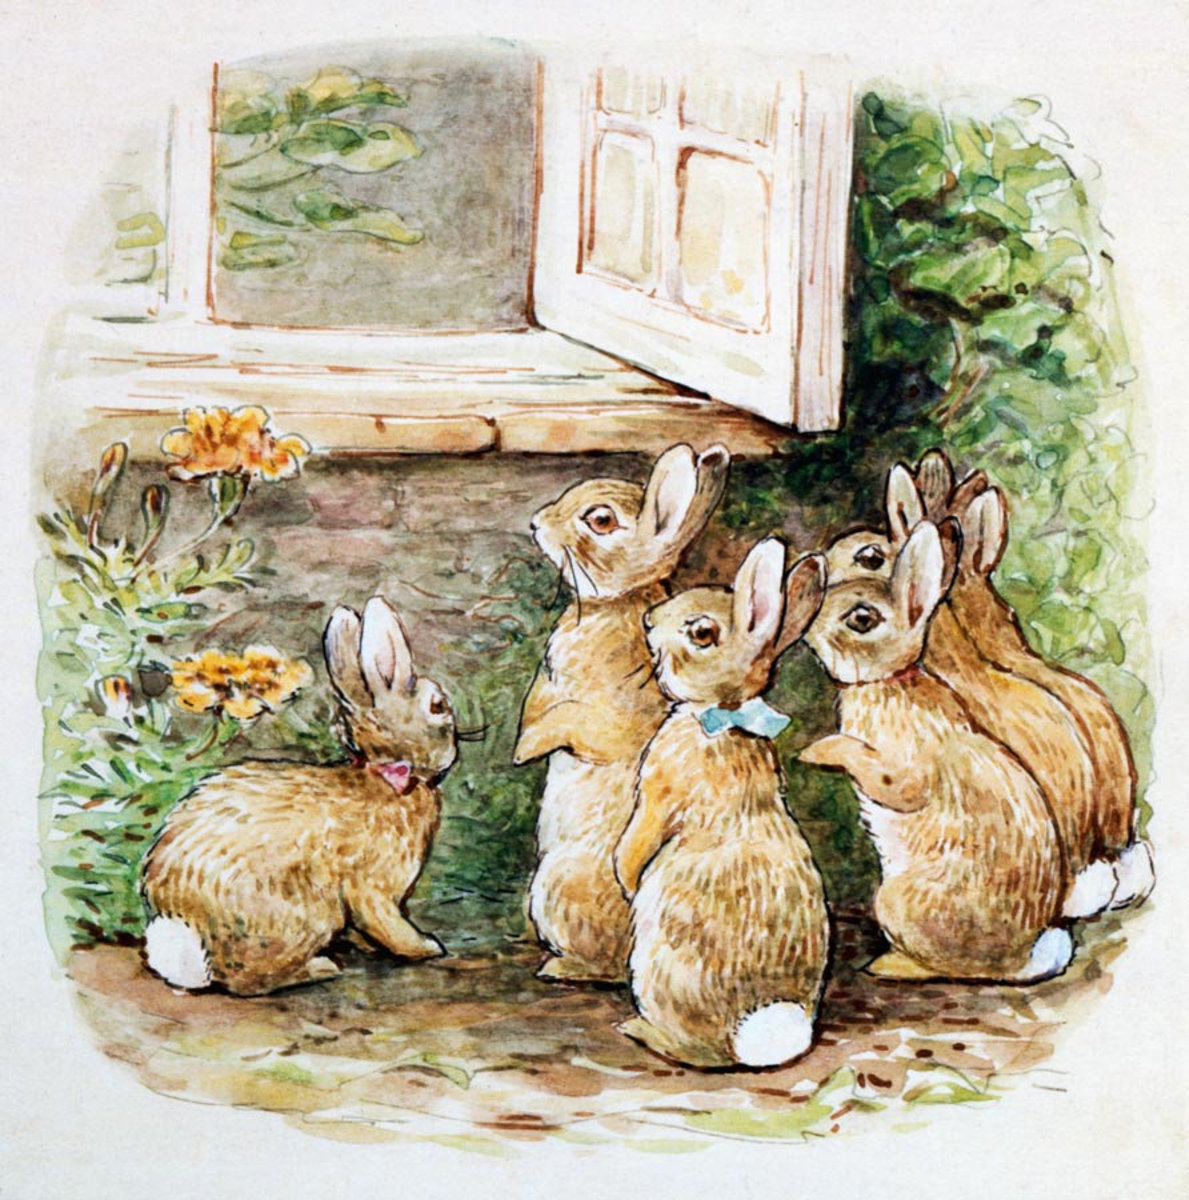 The Flopsy Bunnies At The Window Wallpaper Mural Sample